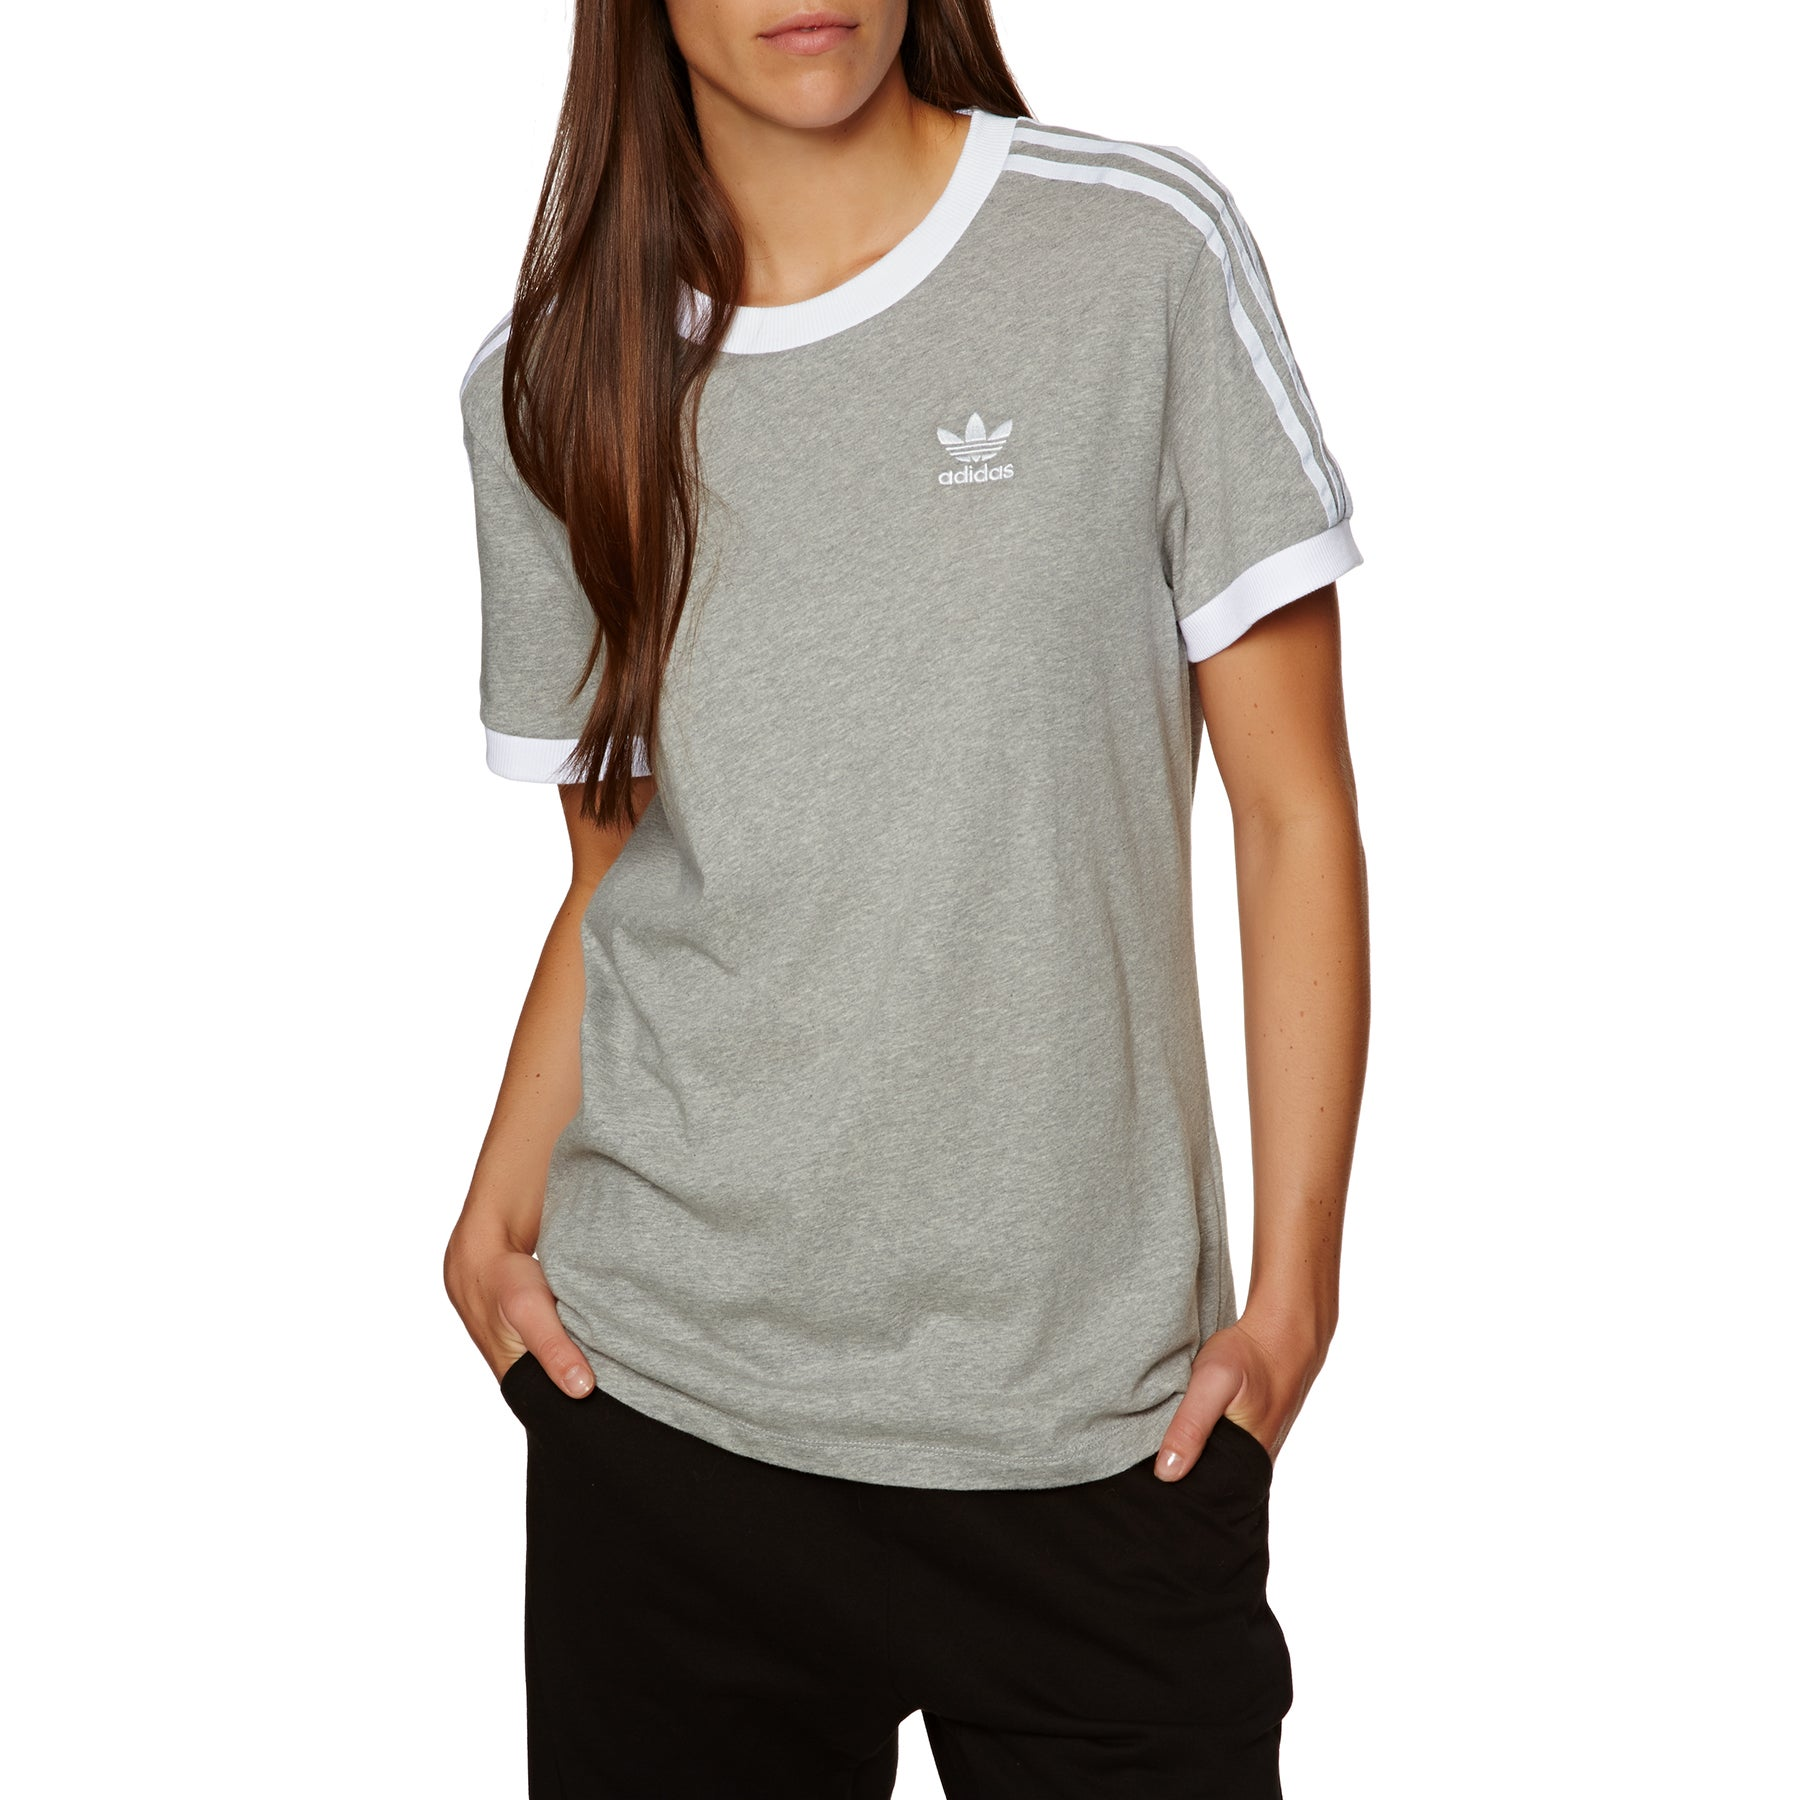 Adidas Originals 3 Stripe Womens Short Sleeve T-Shirt - Medium Grey Heather